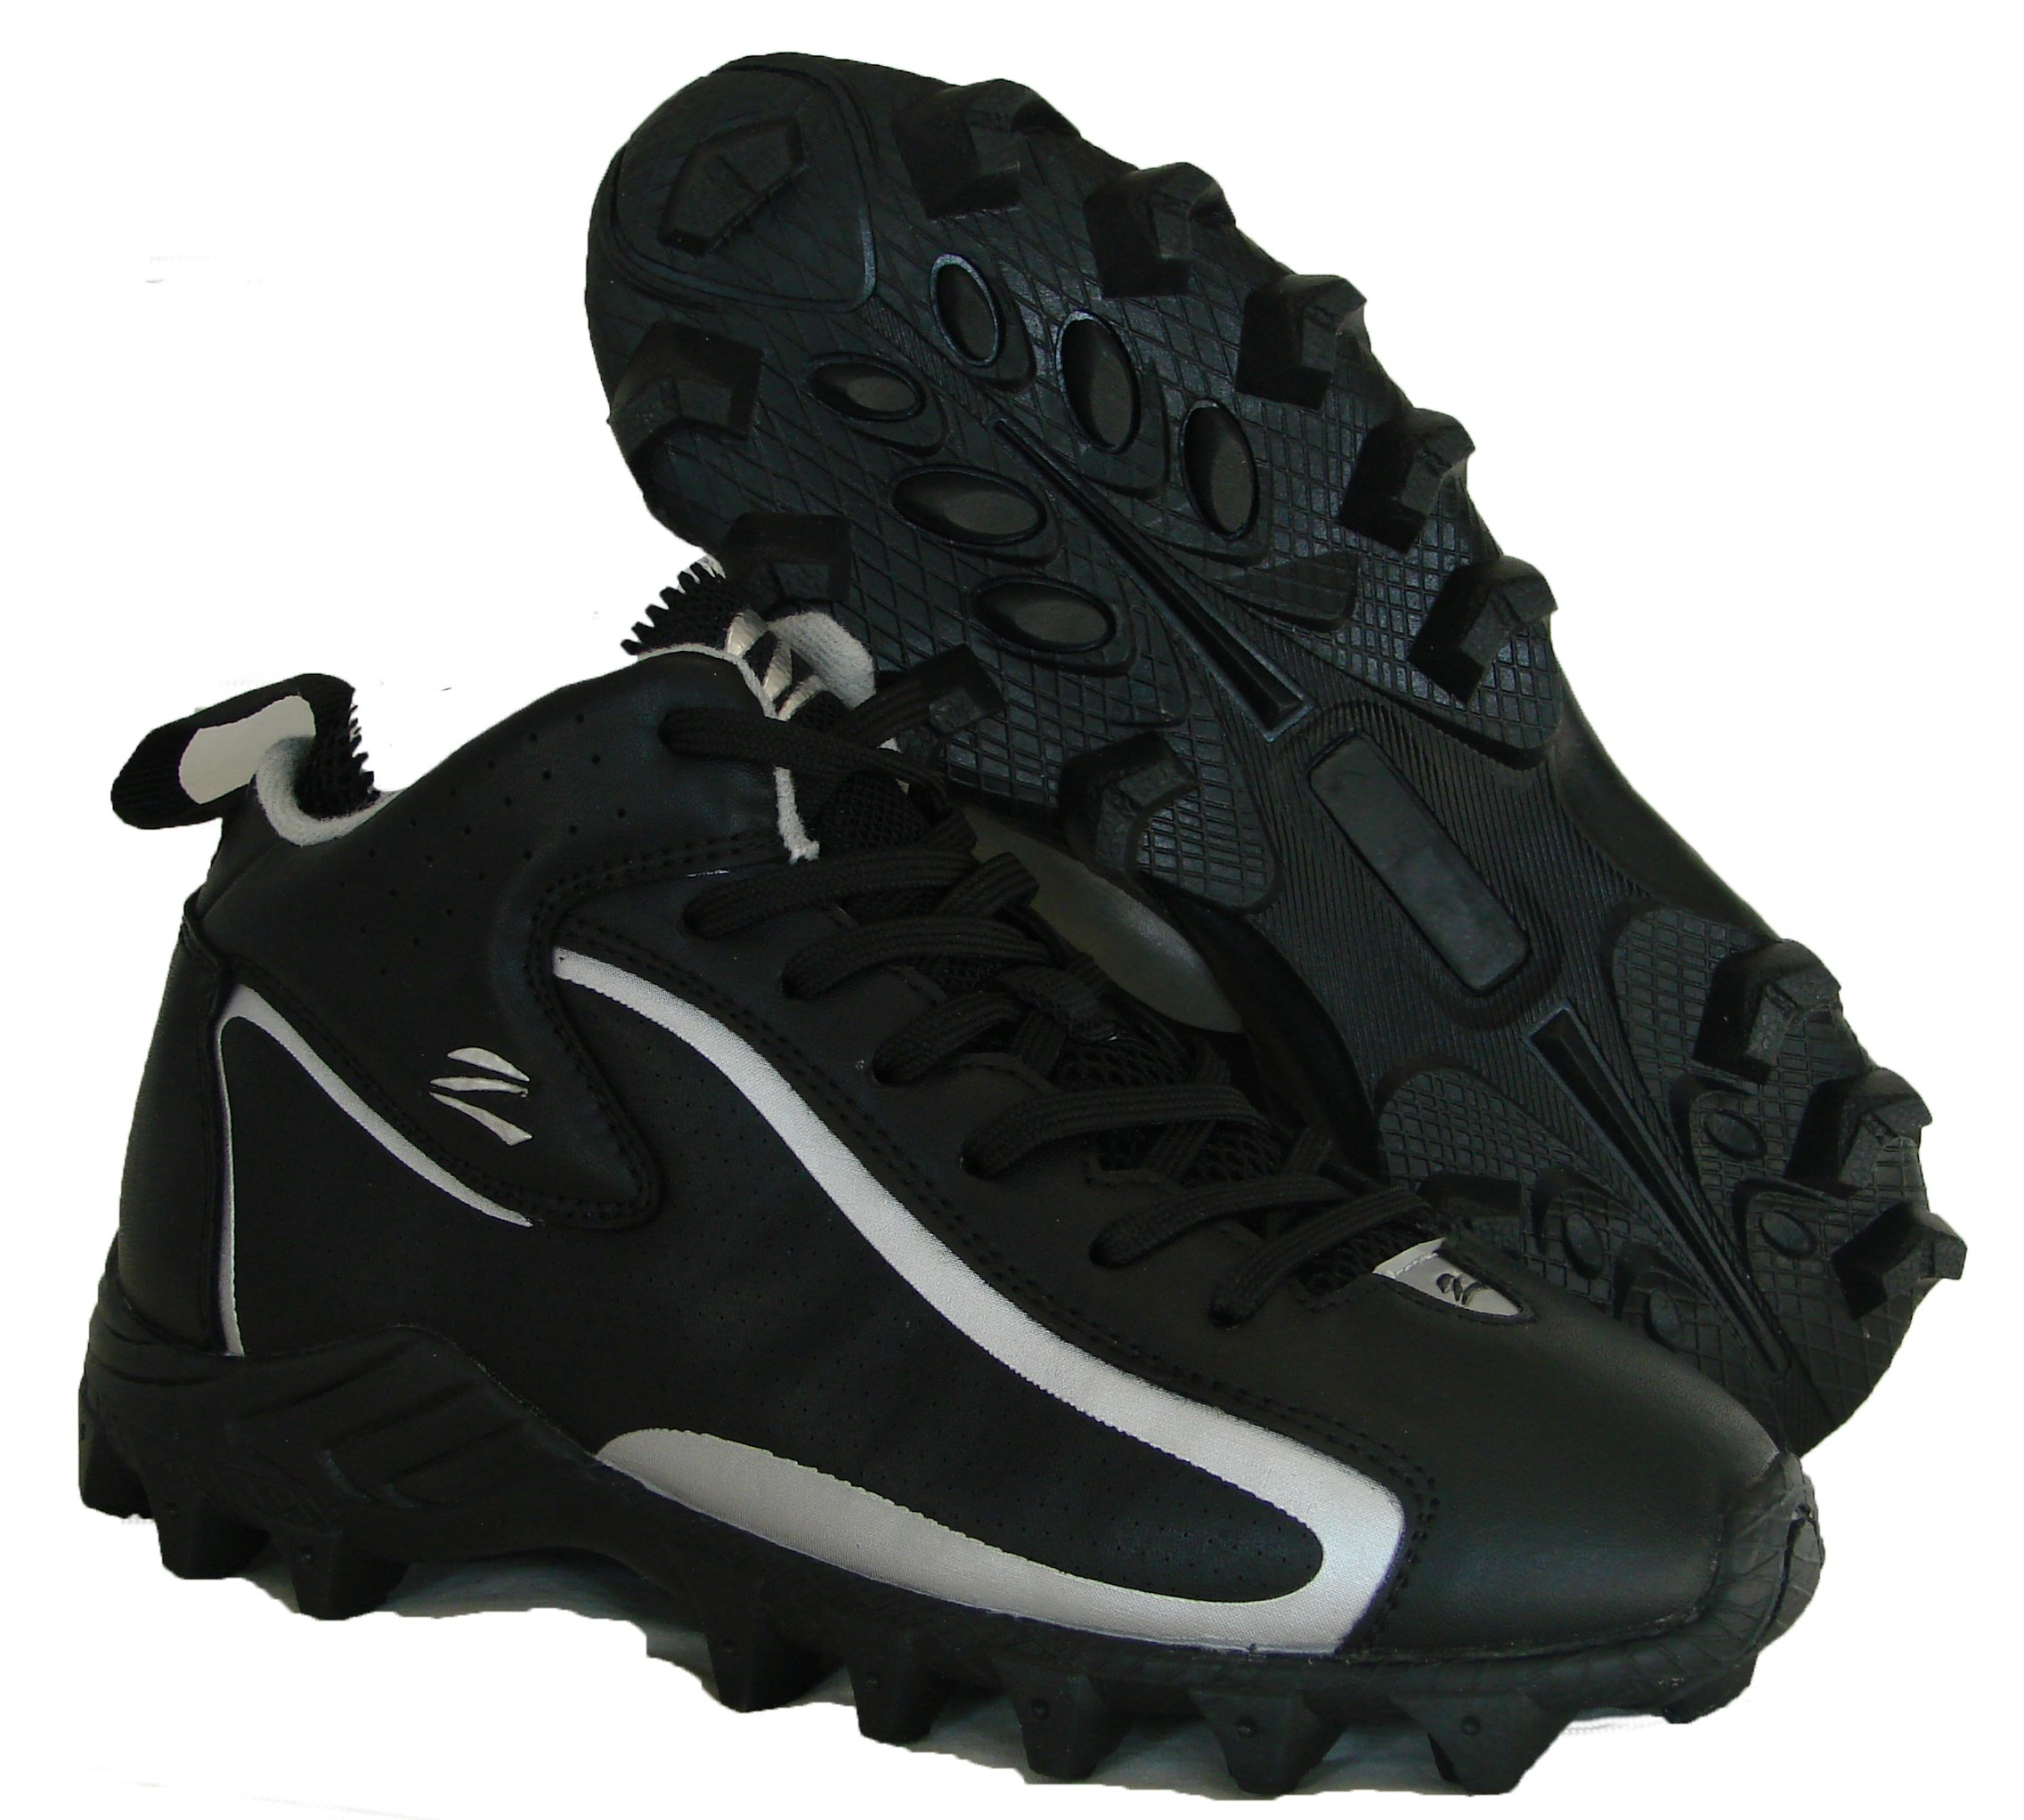 zephz WideTraxx Football Cleat Youth 6